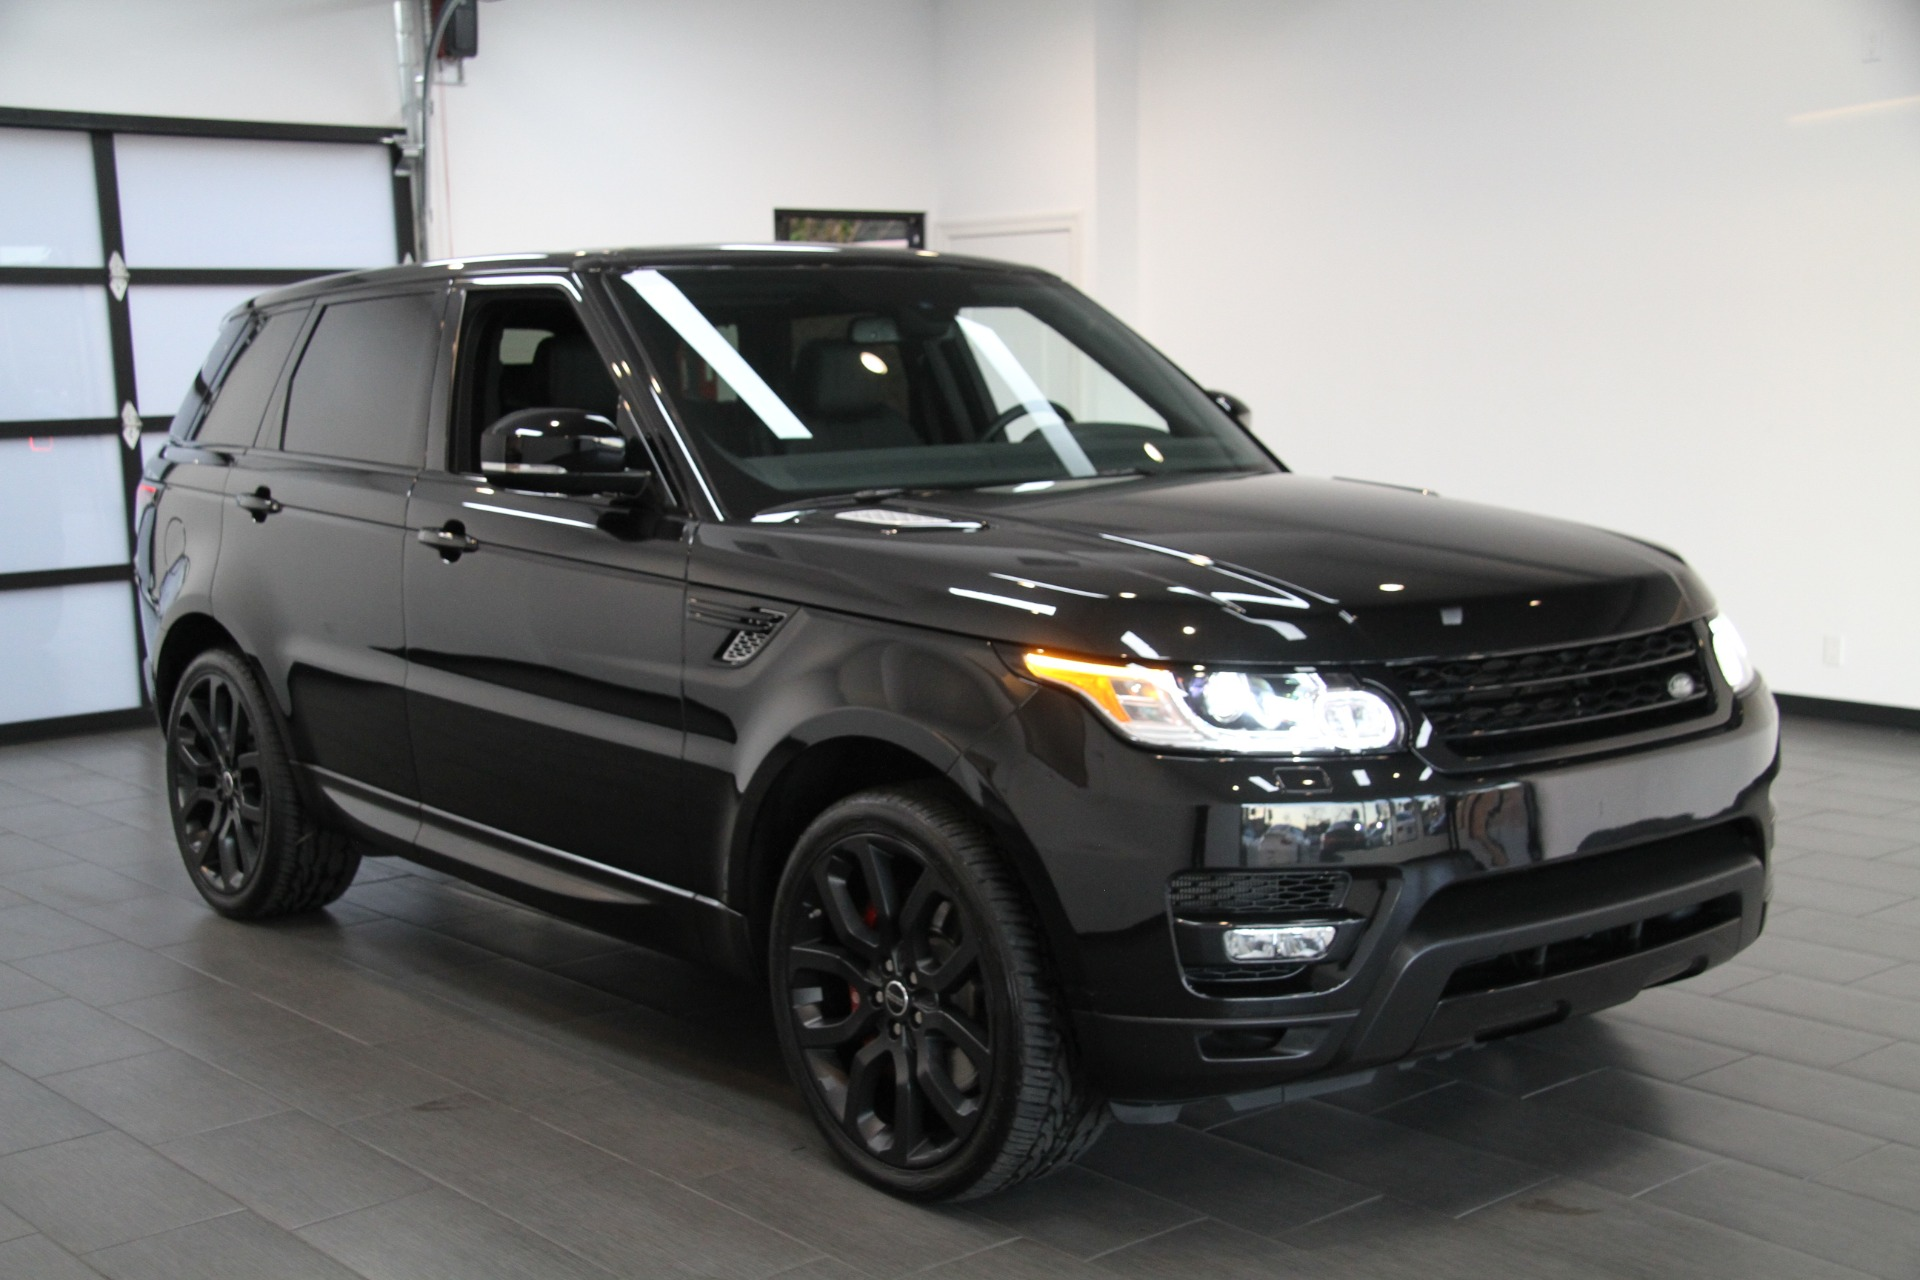 2014 Land Rover Range Rover Sport Supercharged Stock 6114 For Sale Near Redondo Beach Ca Ca